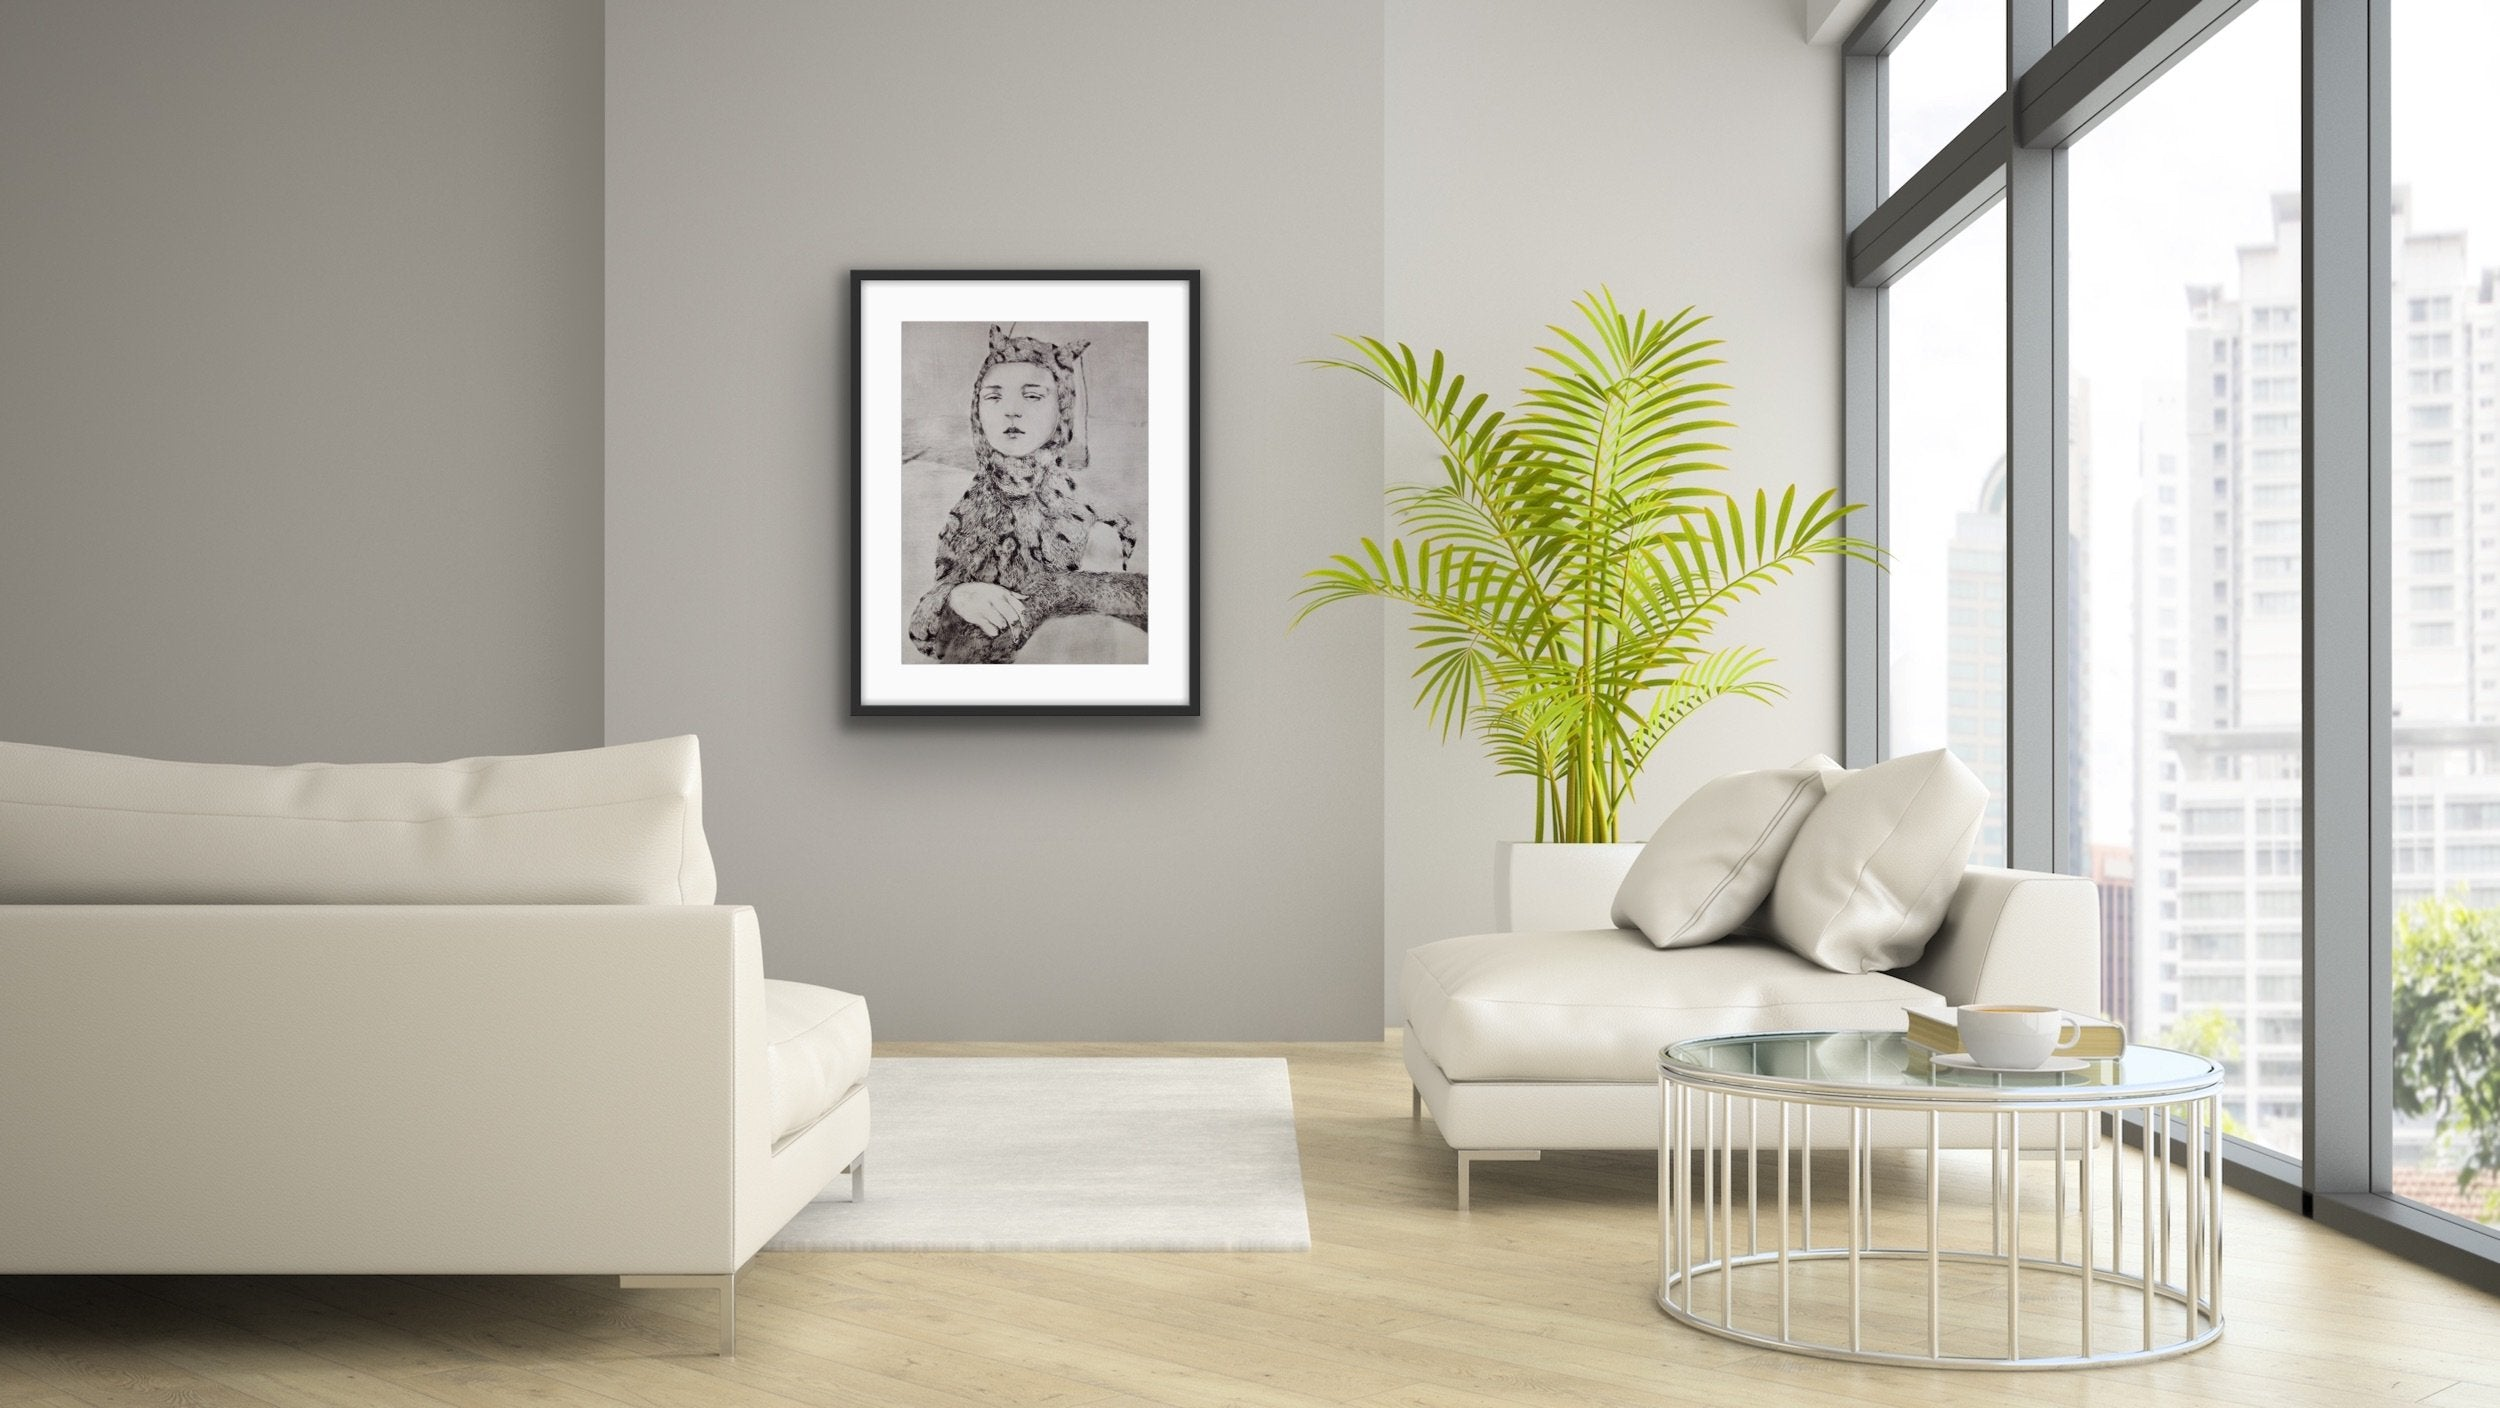 'Leopard', a limited edition, figurative etching by contemporary artist Jesse Leroy Smith, shown in situ